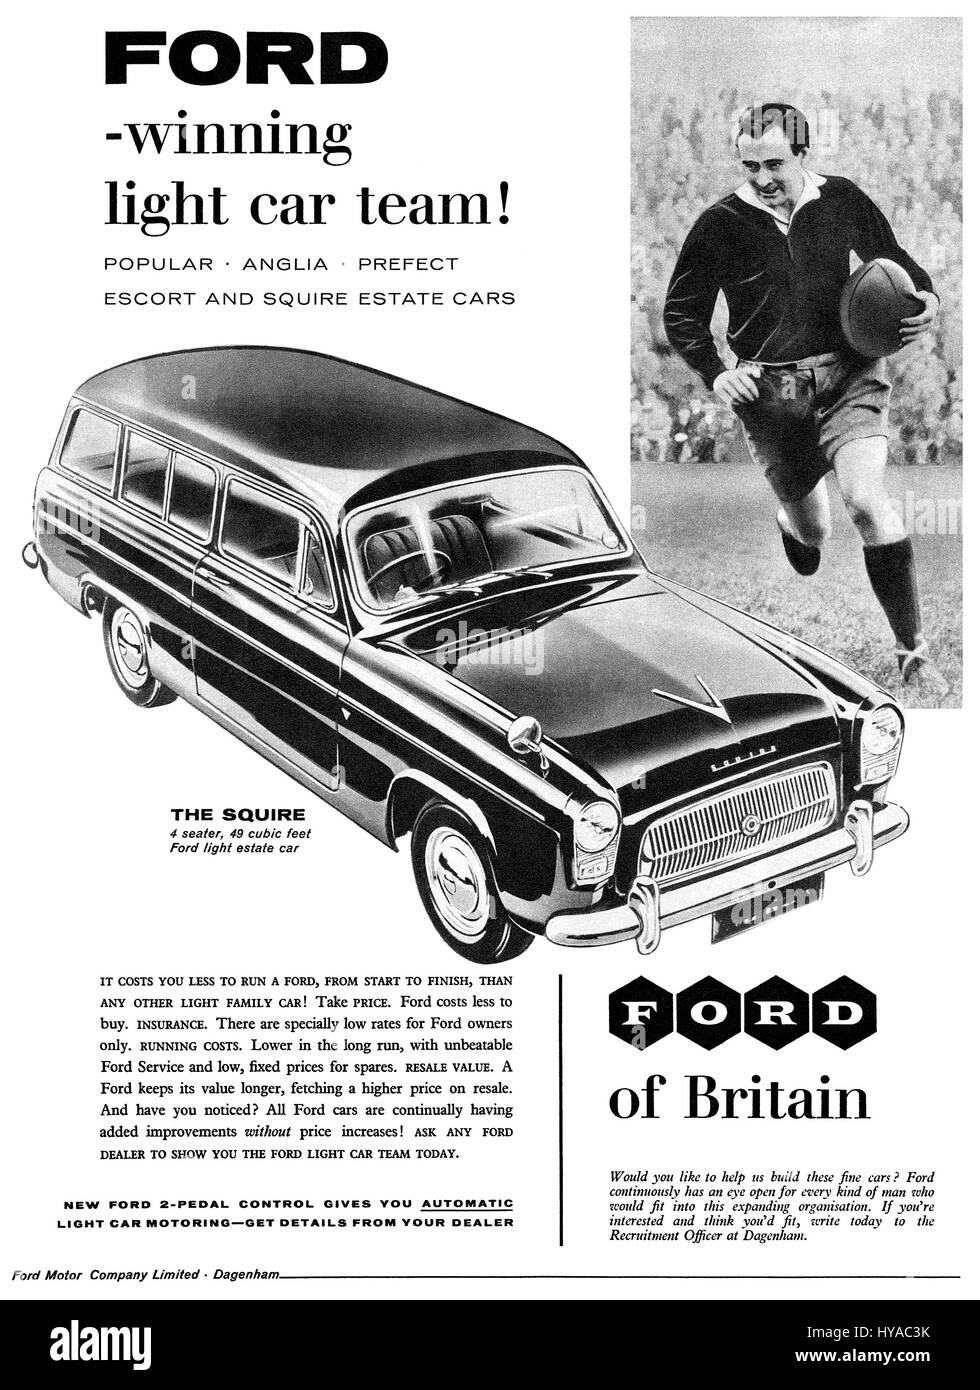 1958 British advertisement for the Ford Squire Estate Car. - Stock Image